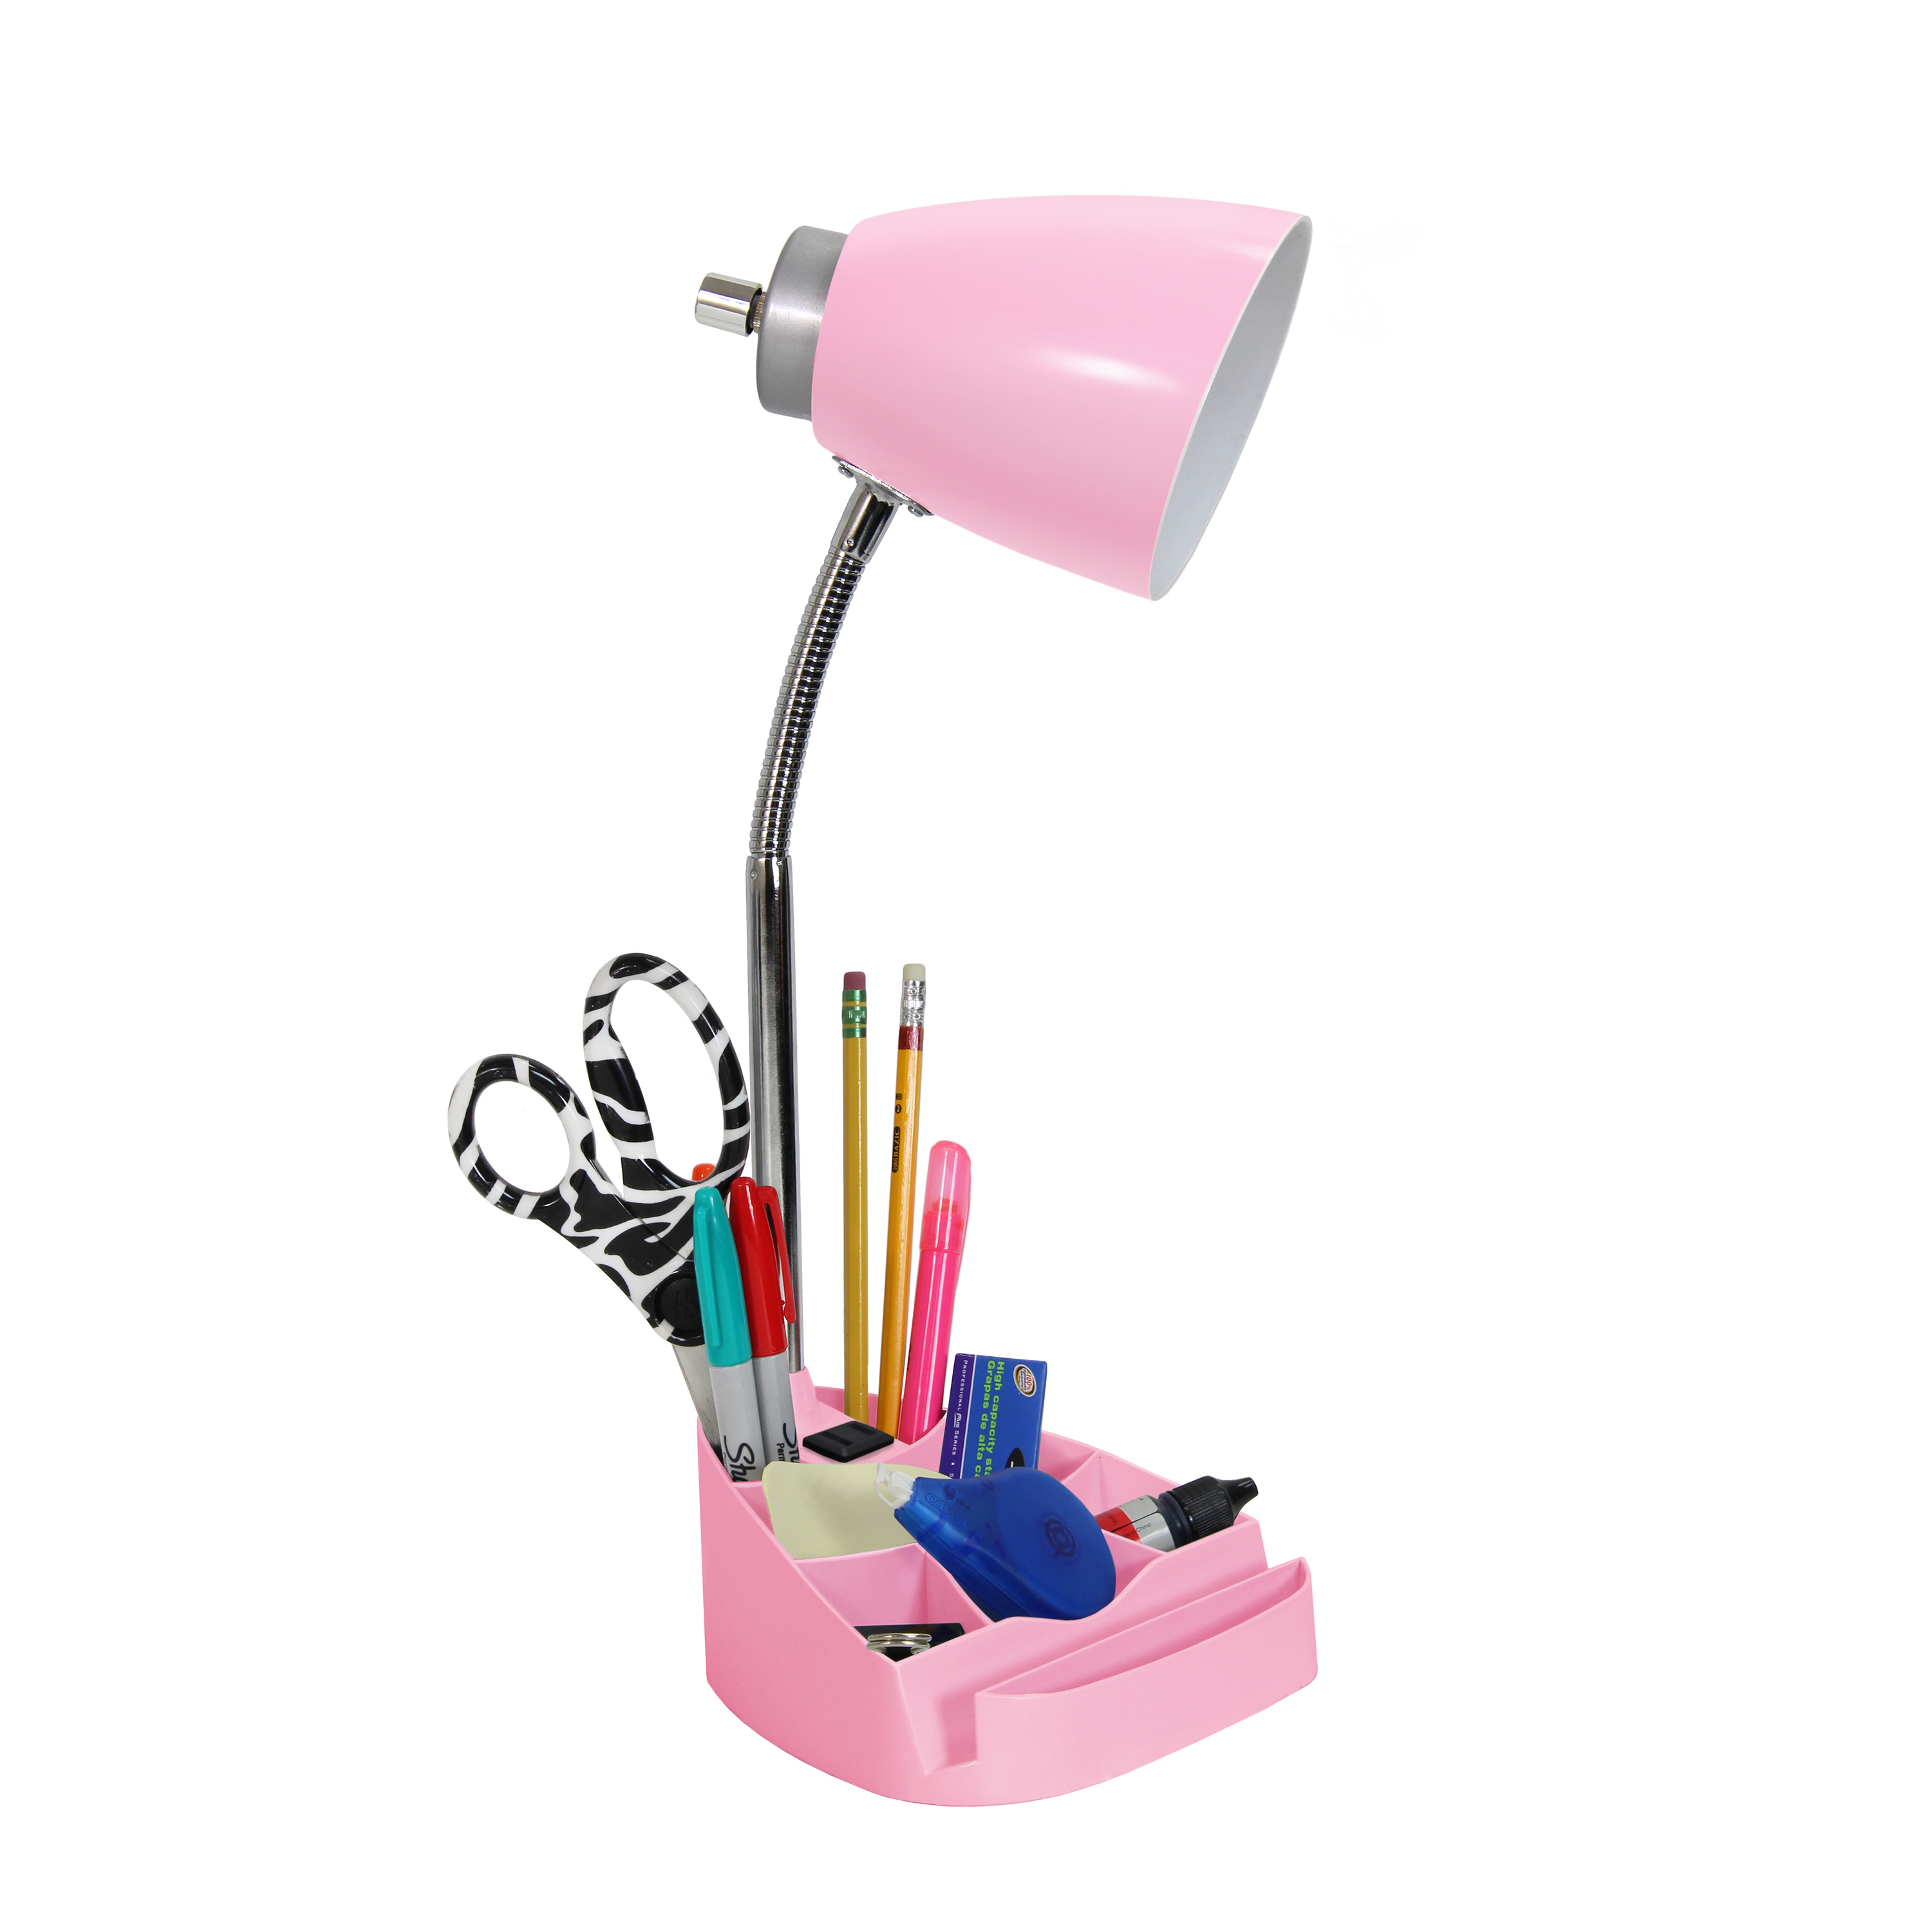 Limelights Gooseneck Organizer Desk Lamp with iPad Tablet Stand Book Holder and Charging Outlet, Pink - image 3 of 4